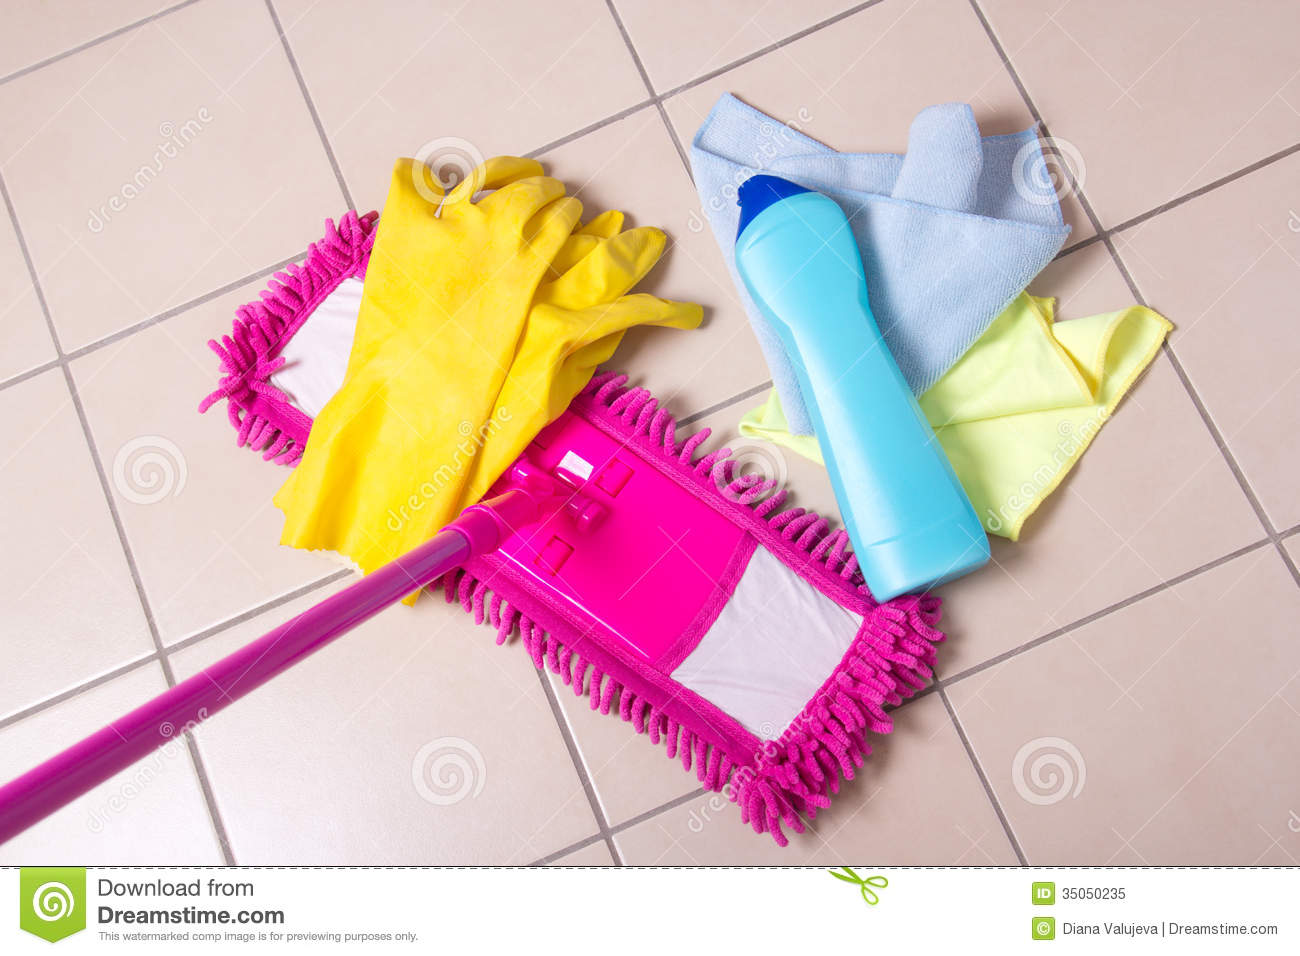 Cleaning Products On The Tile Floor Stock Image Image Of Mopping - Bathroom tiles cleaning products